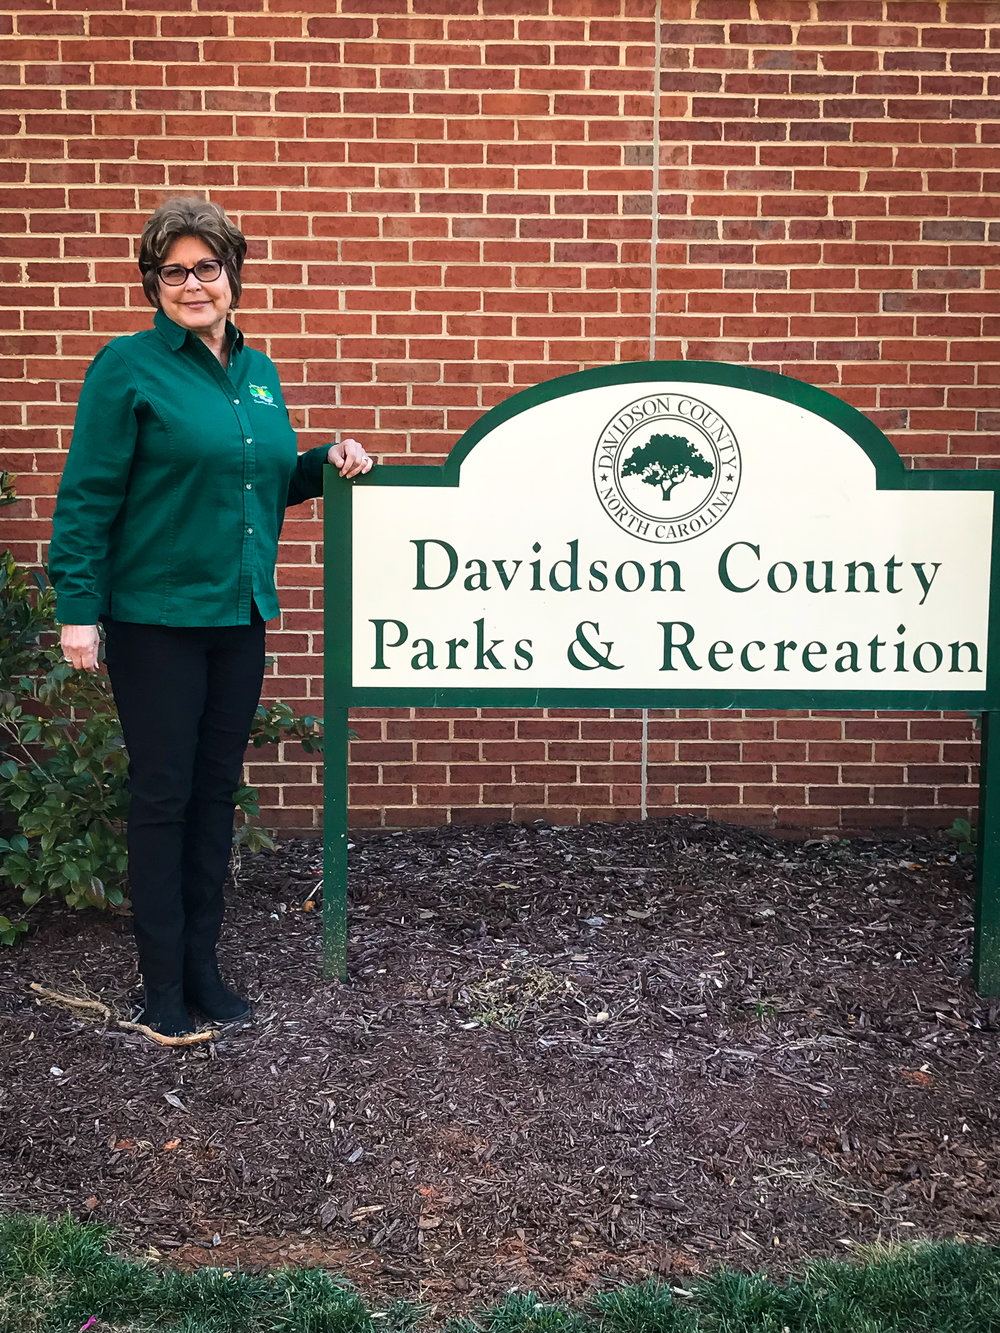 Brown handles multiple responsibilities at Davidson County Parks and Recreation, which includes coordinating the Davidson County Special Olympics.